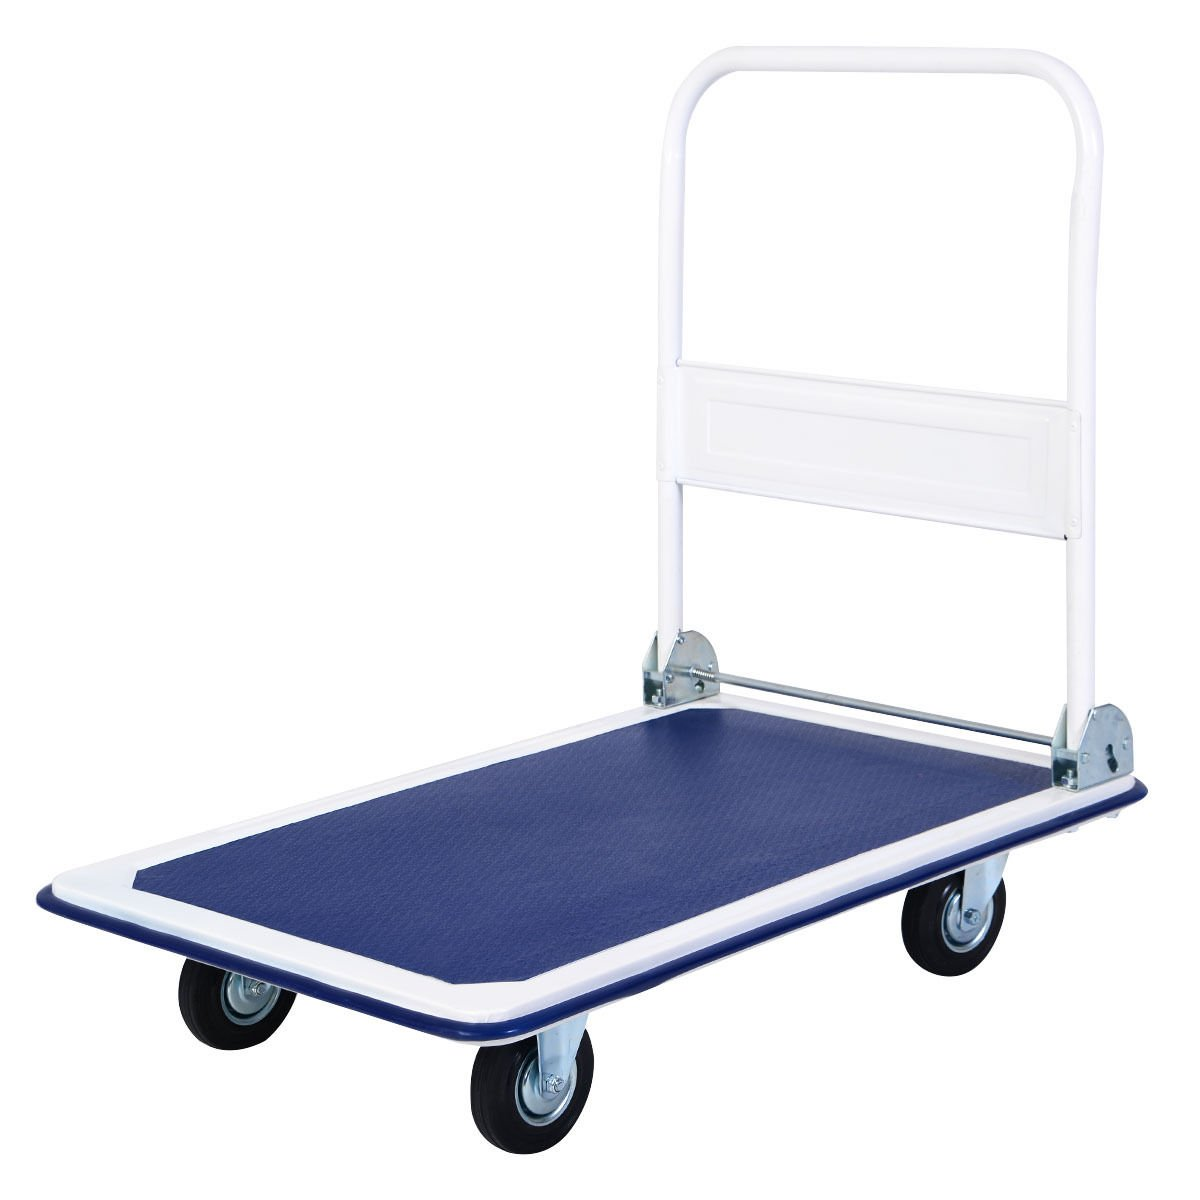 New 660lbs Blue Platform Cart Dolly Folding Foldable Moving Warehouse Push Hand Truck